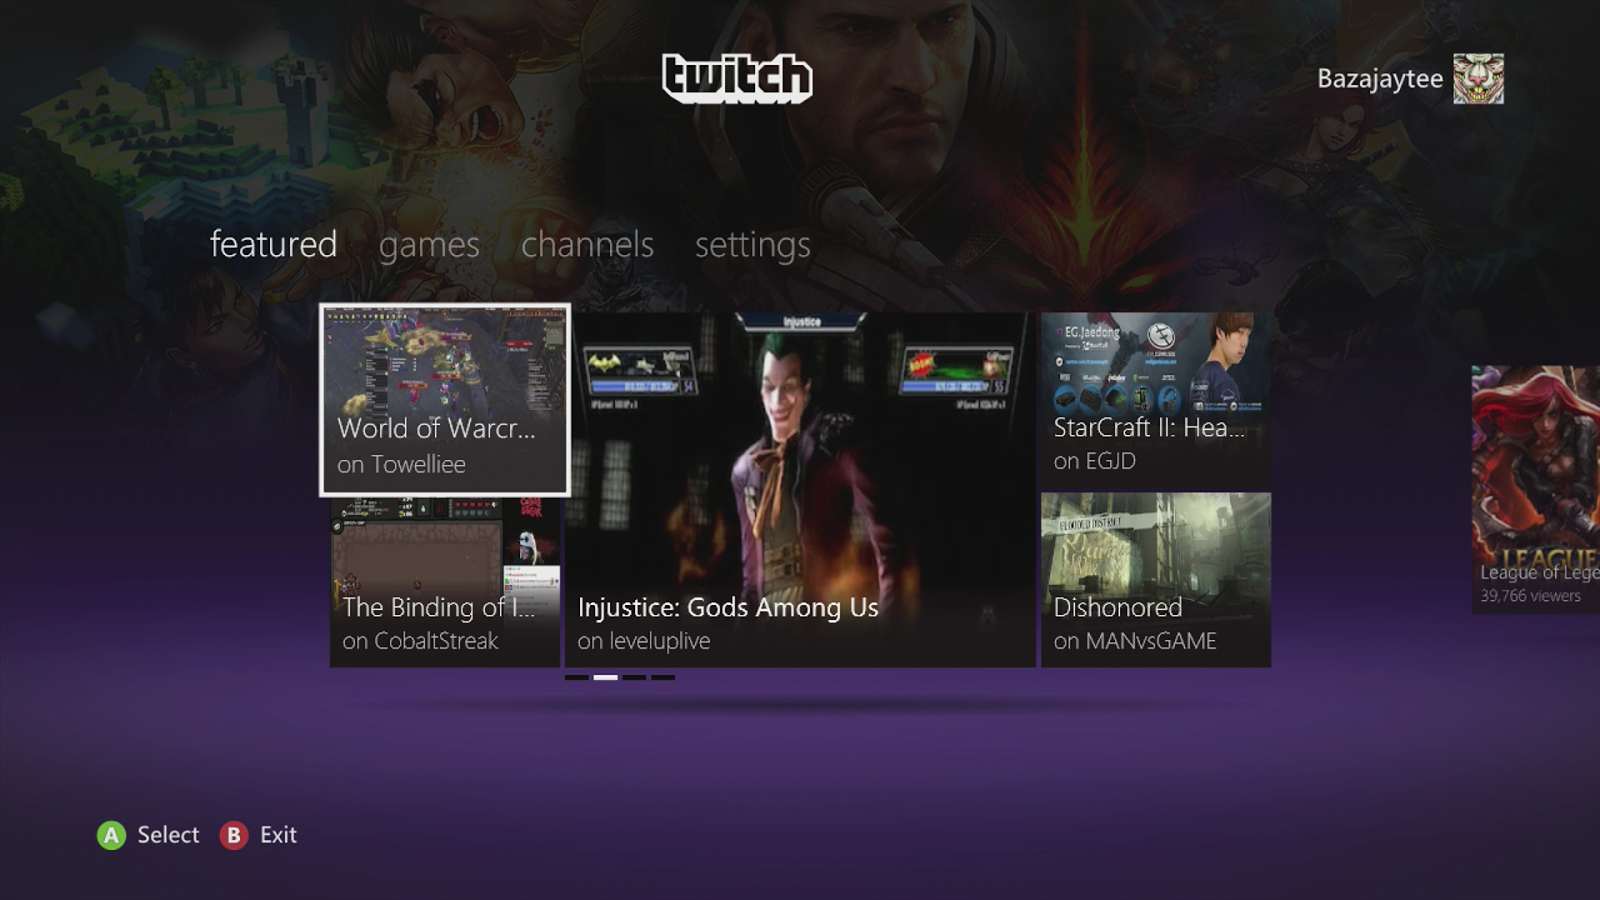 Screenshot of Twitch website